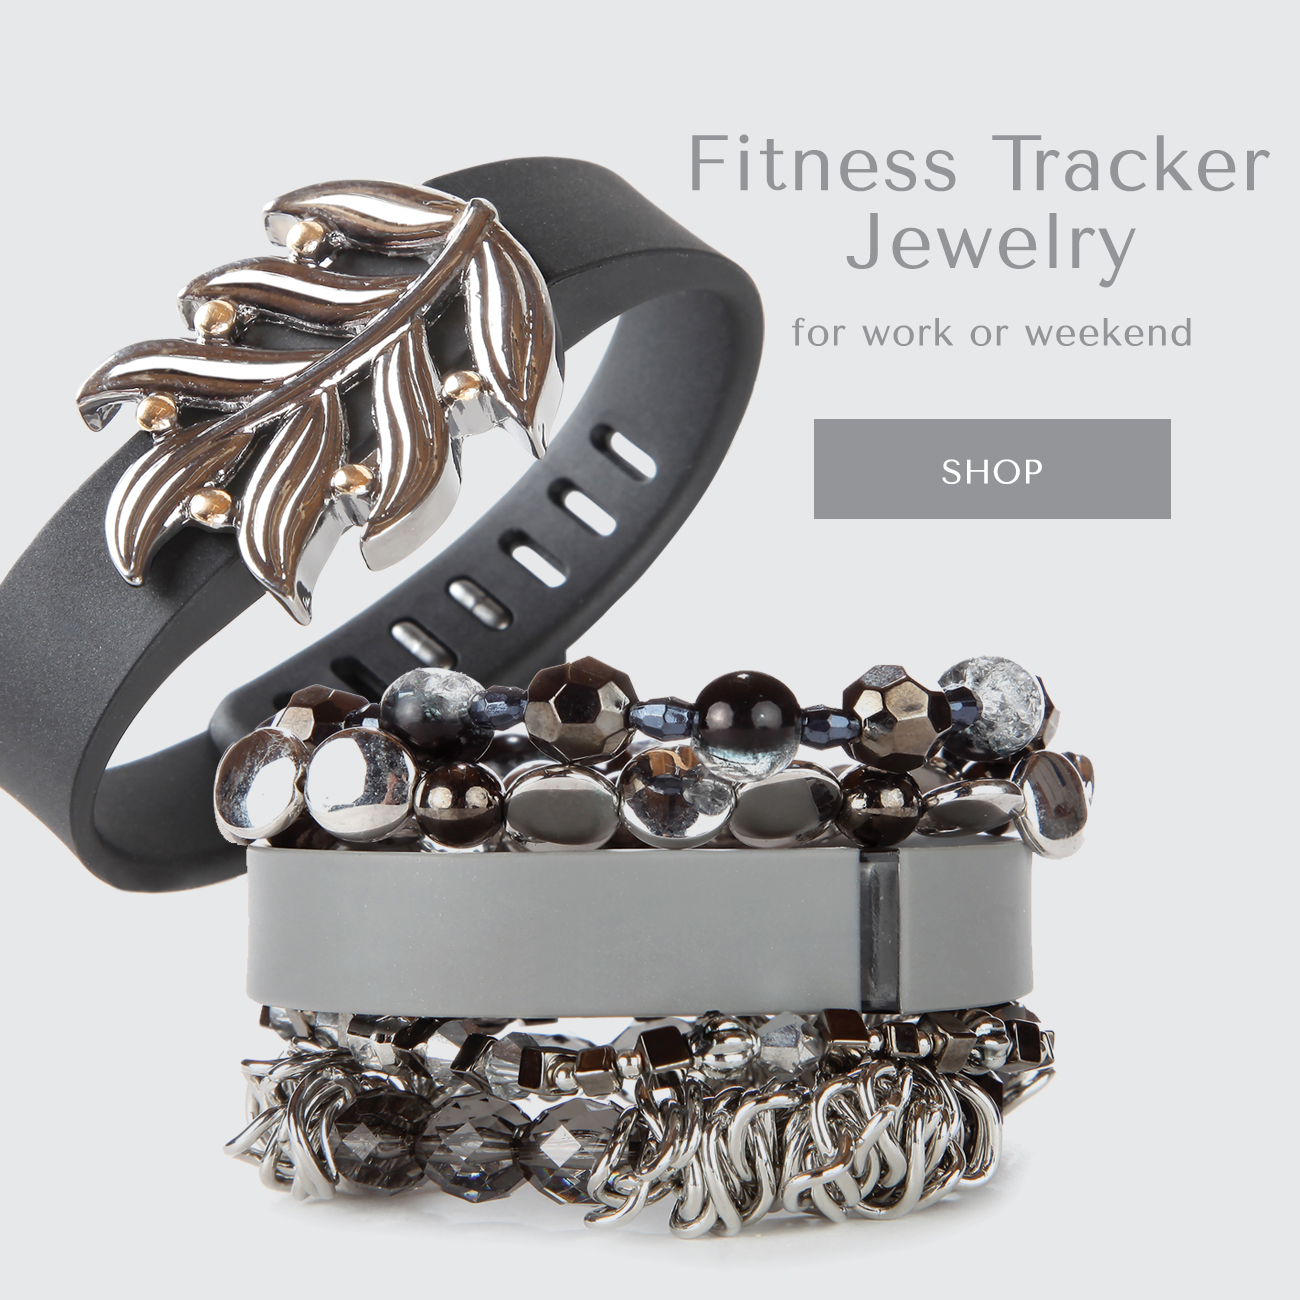 Fitness Tracker Jewelry for work or weekend